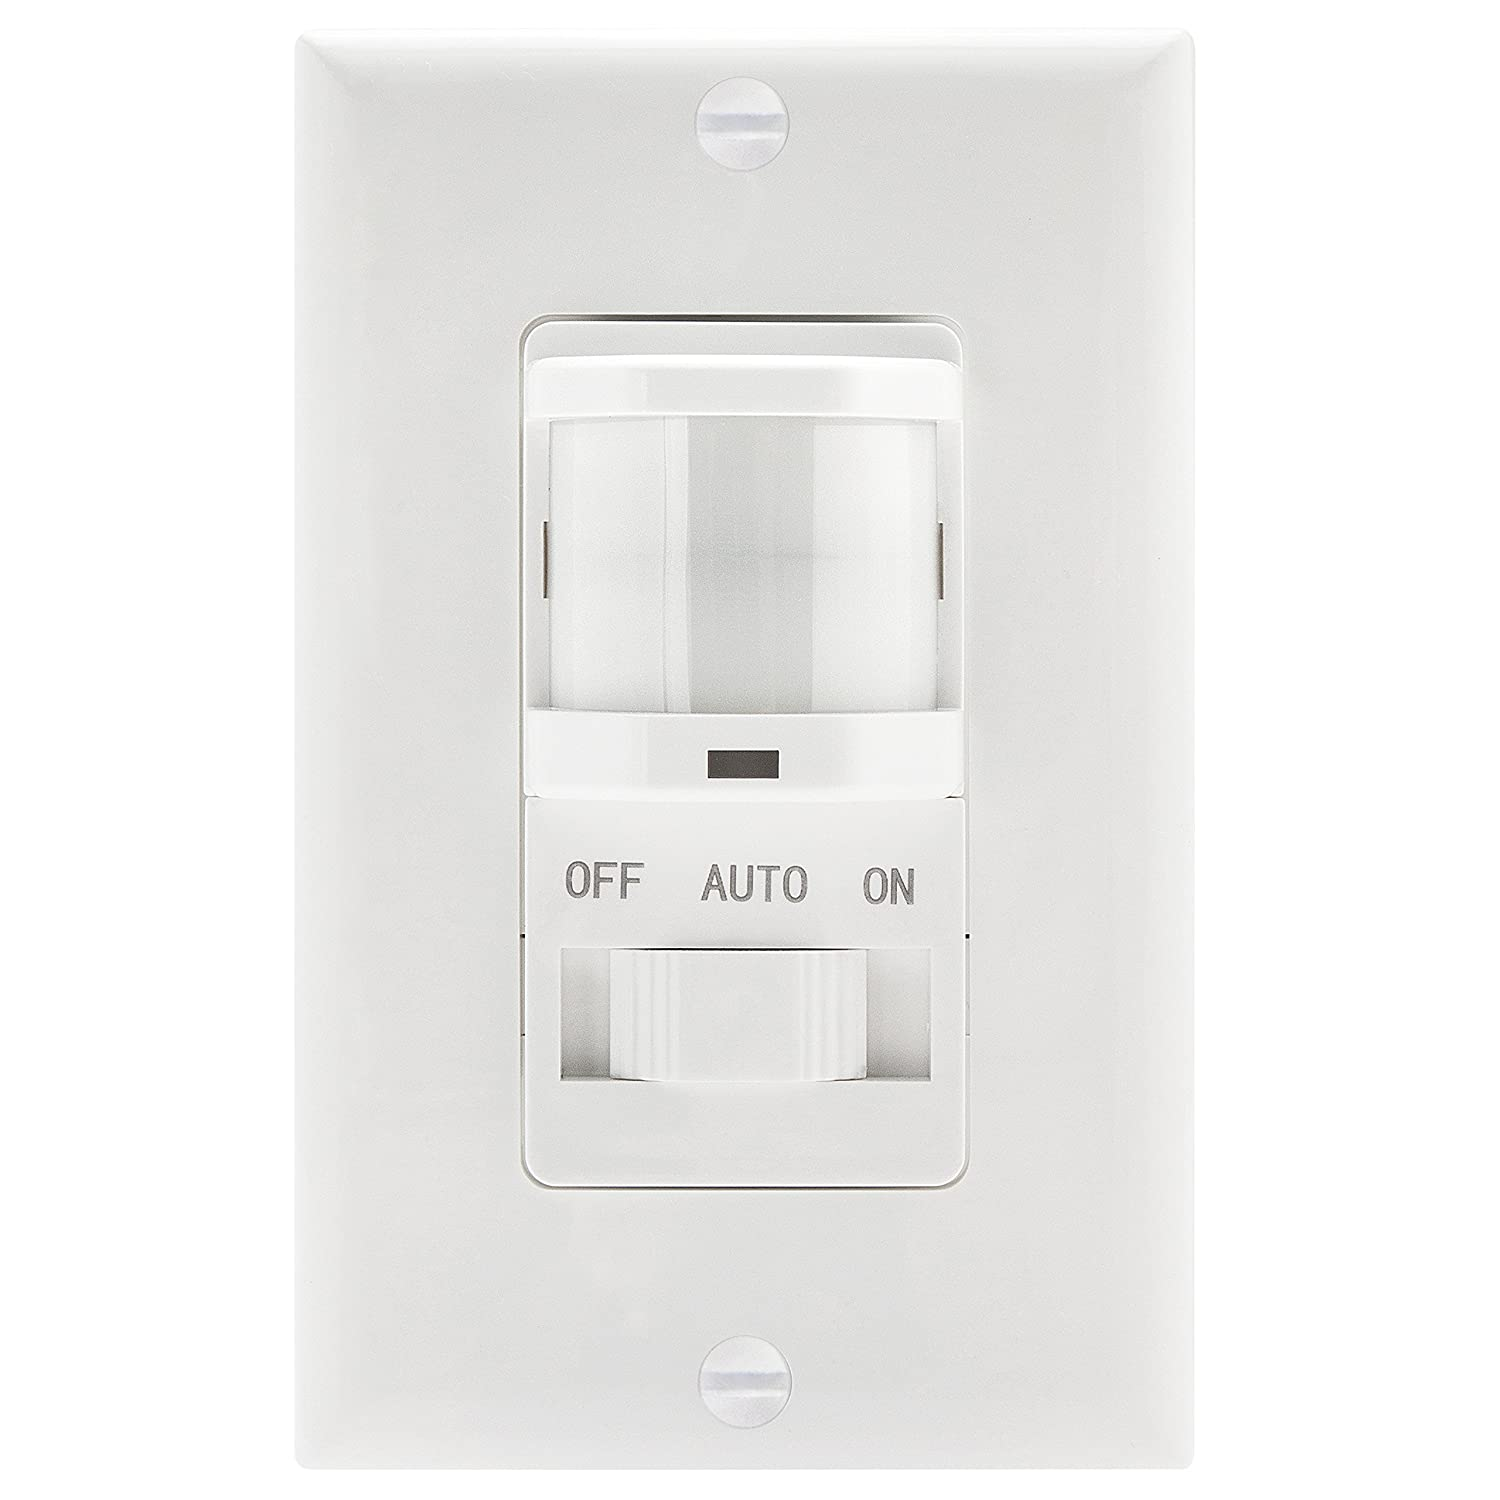 Topgreener Tsos5 White In Wall Pir Motion Sensor Light Switch Wiring Three Black Wires Occupancy On Off Override Single Pole Fluorescent 500va Motor